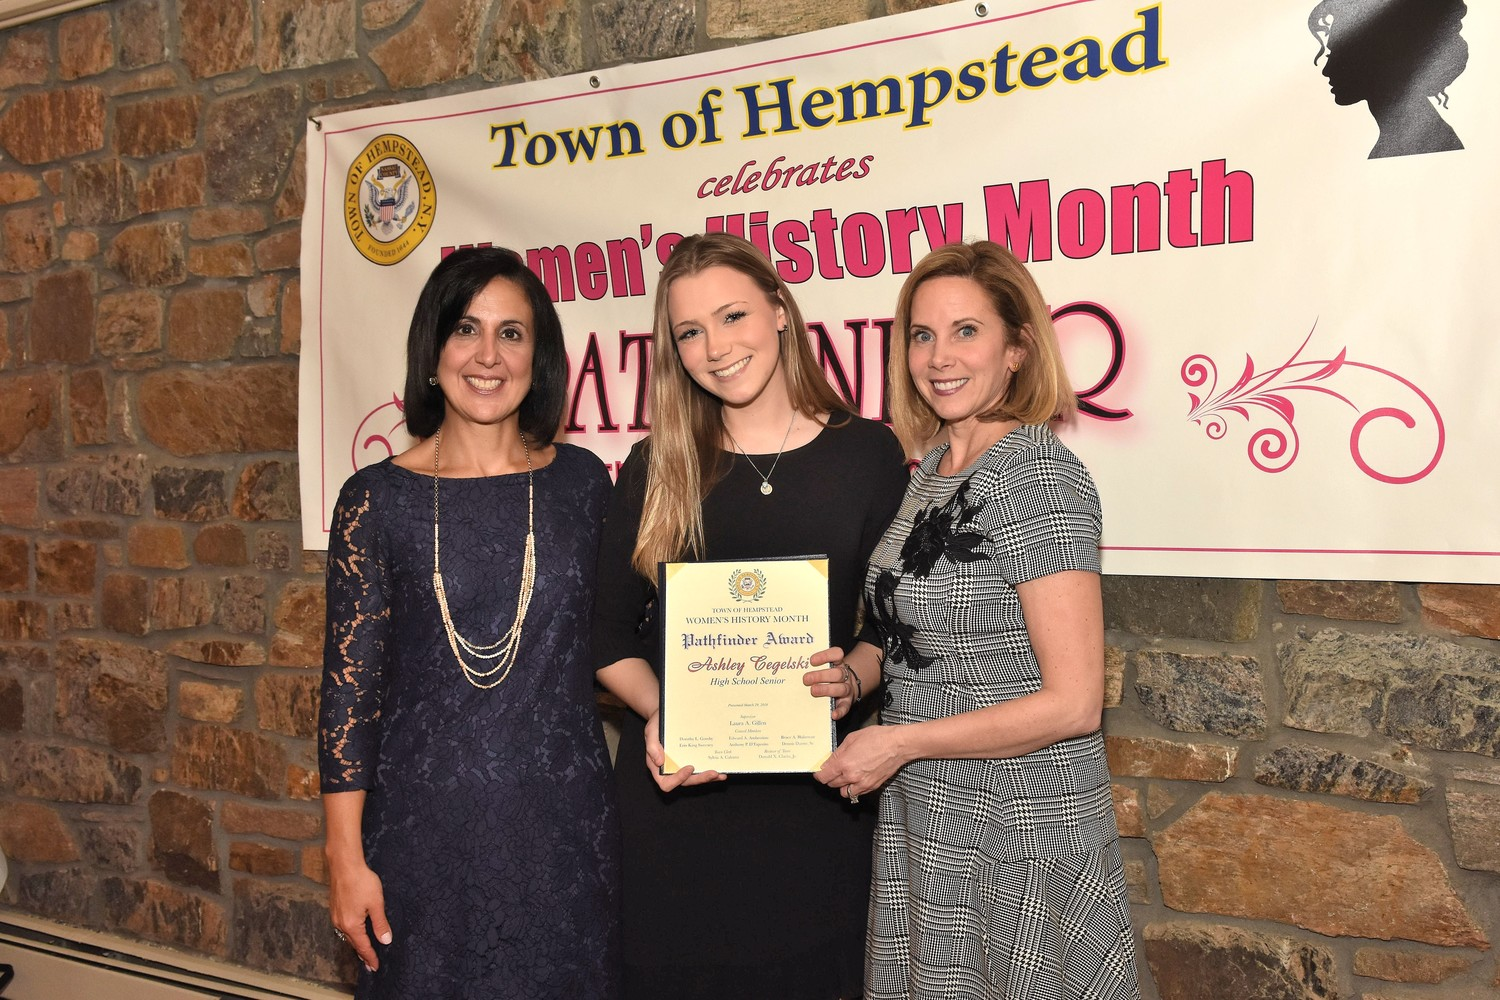 Ashley Cegelski was honored at the 2018 Pathfinder Awards by Town of Hempstead Clerk Sylvia Cabana, left, and Town Supervisor Laura Gillen.